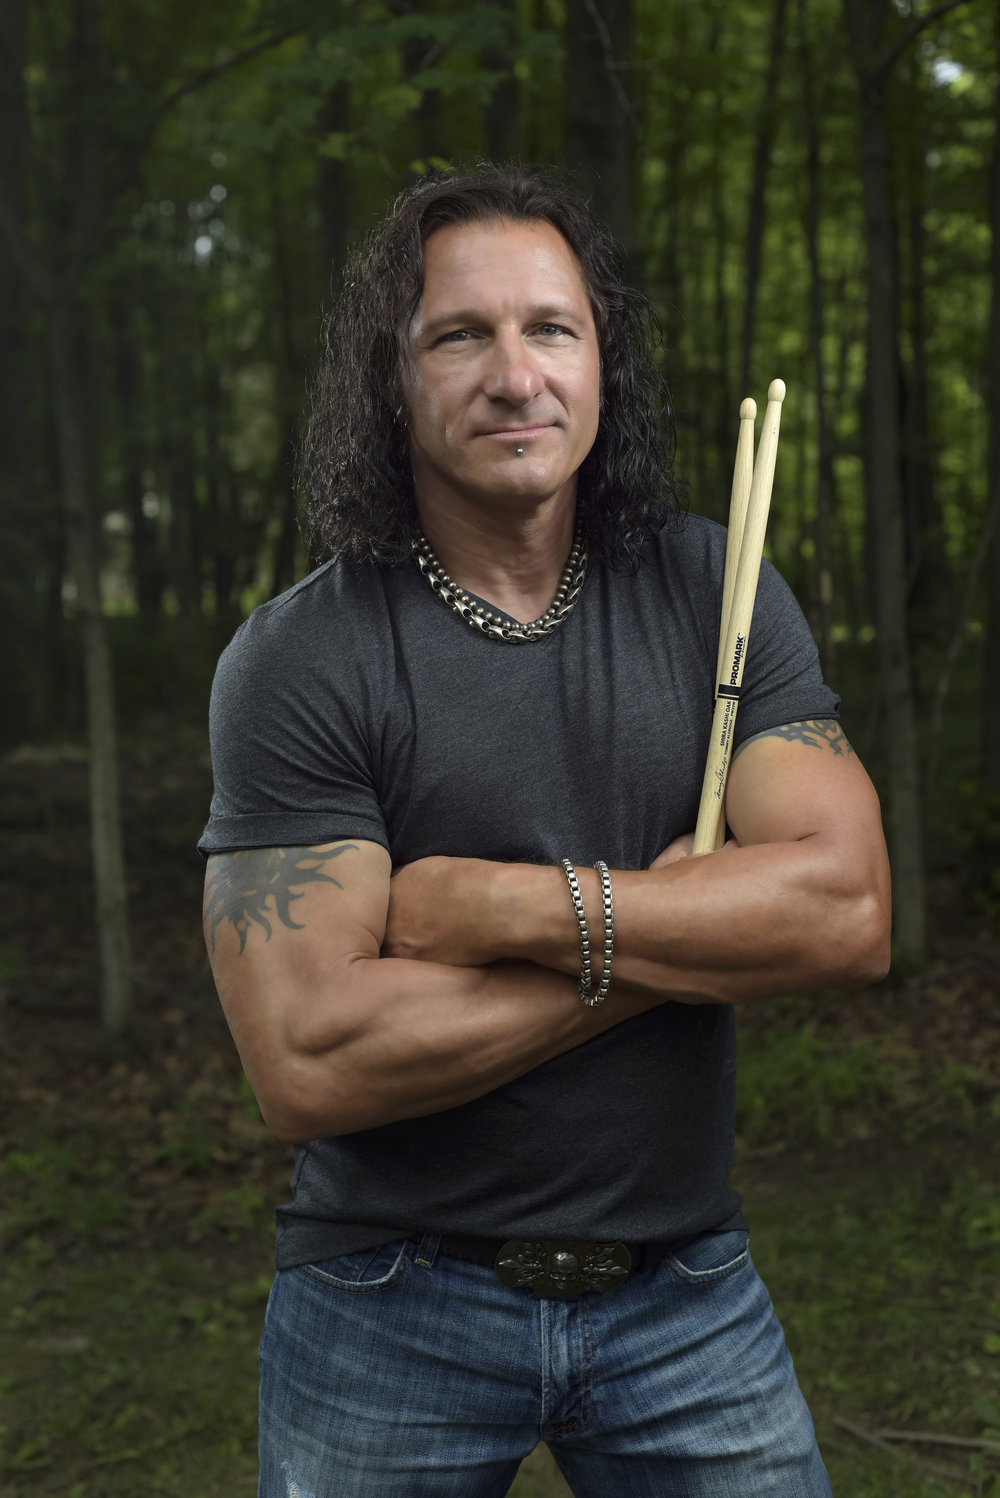 Drummer Kevin Miller, formerly of the band Fuel, photographed in Northampton County, Pennsylvania.